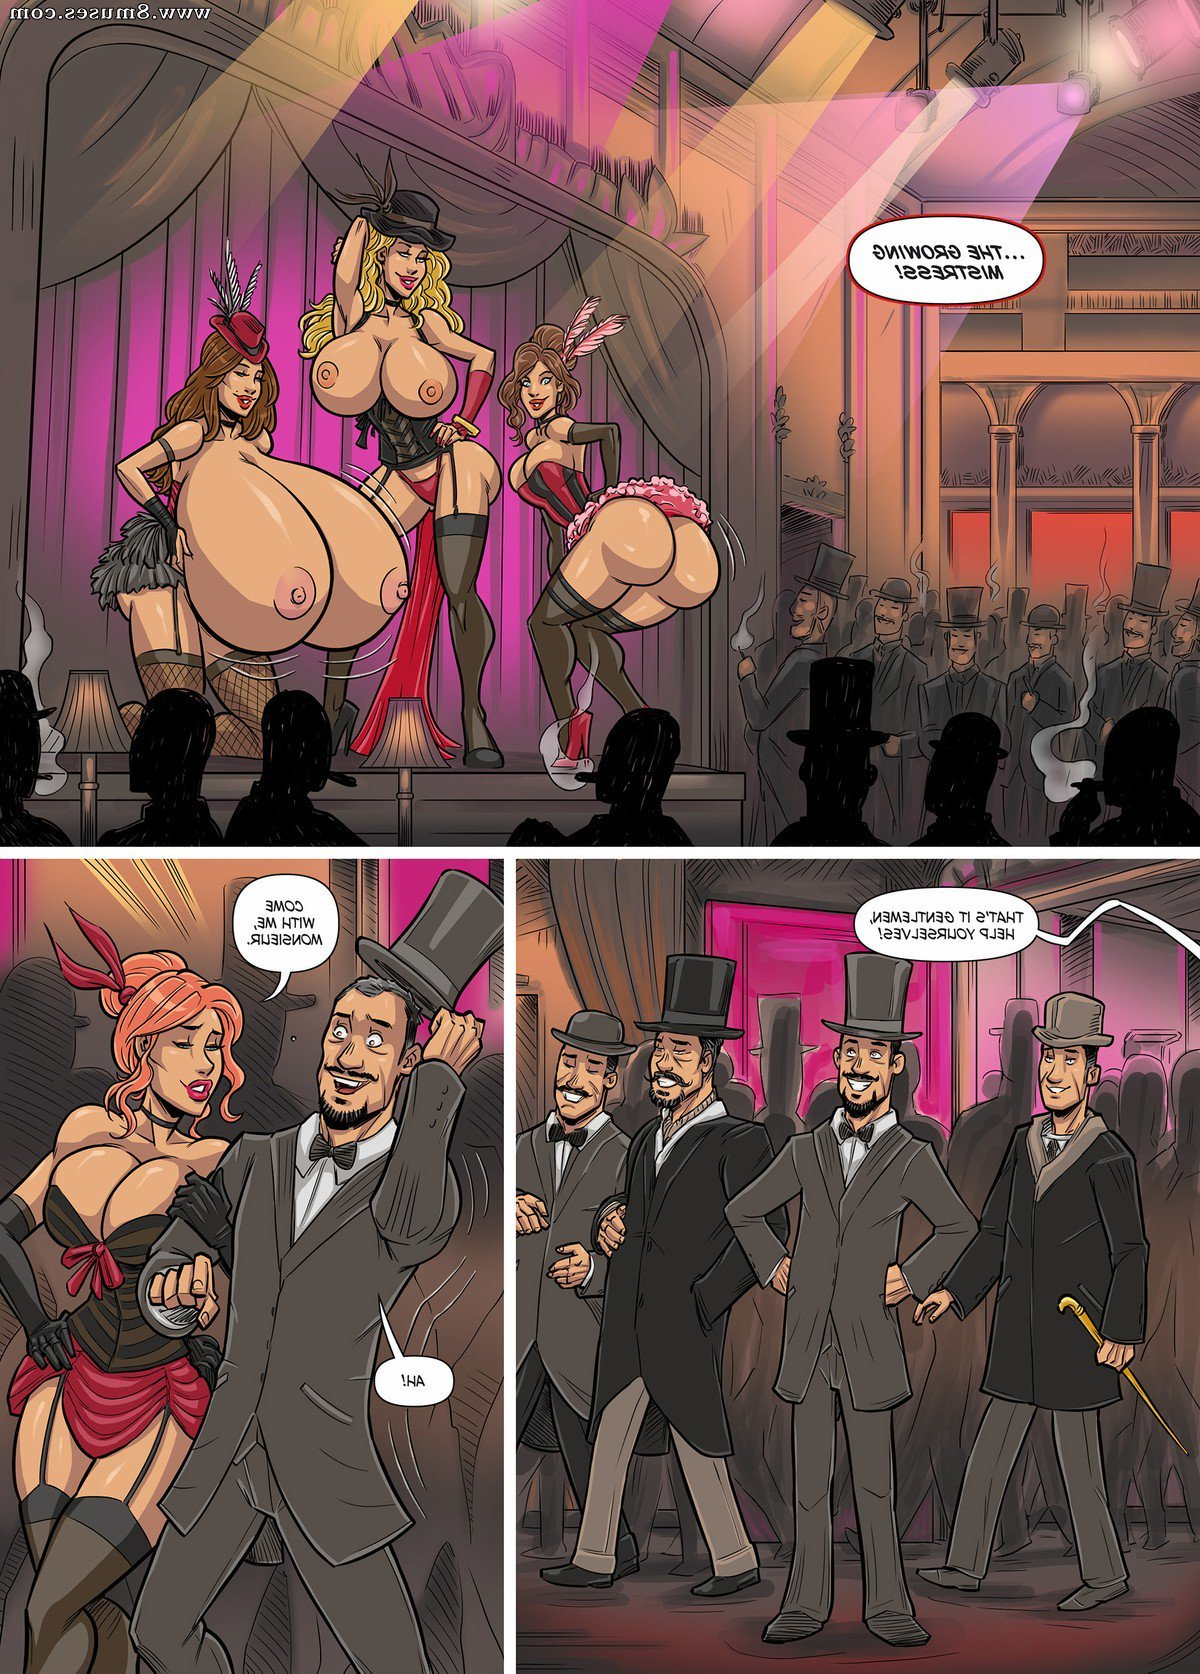 Expansionfan-Comics/The-Growing-Mistress/Issue-1 The_Growing_Mistress_-_Issue_1_14.jpg